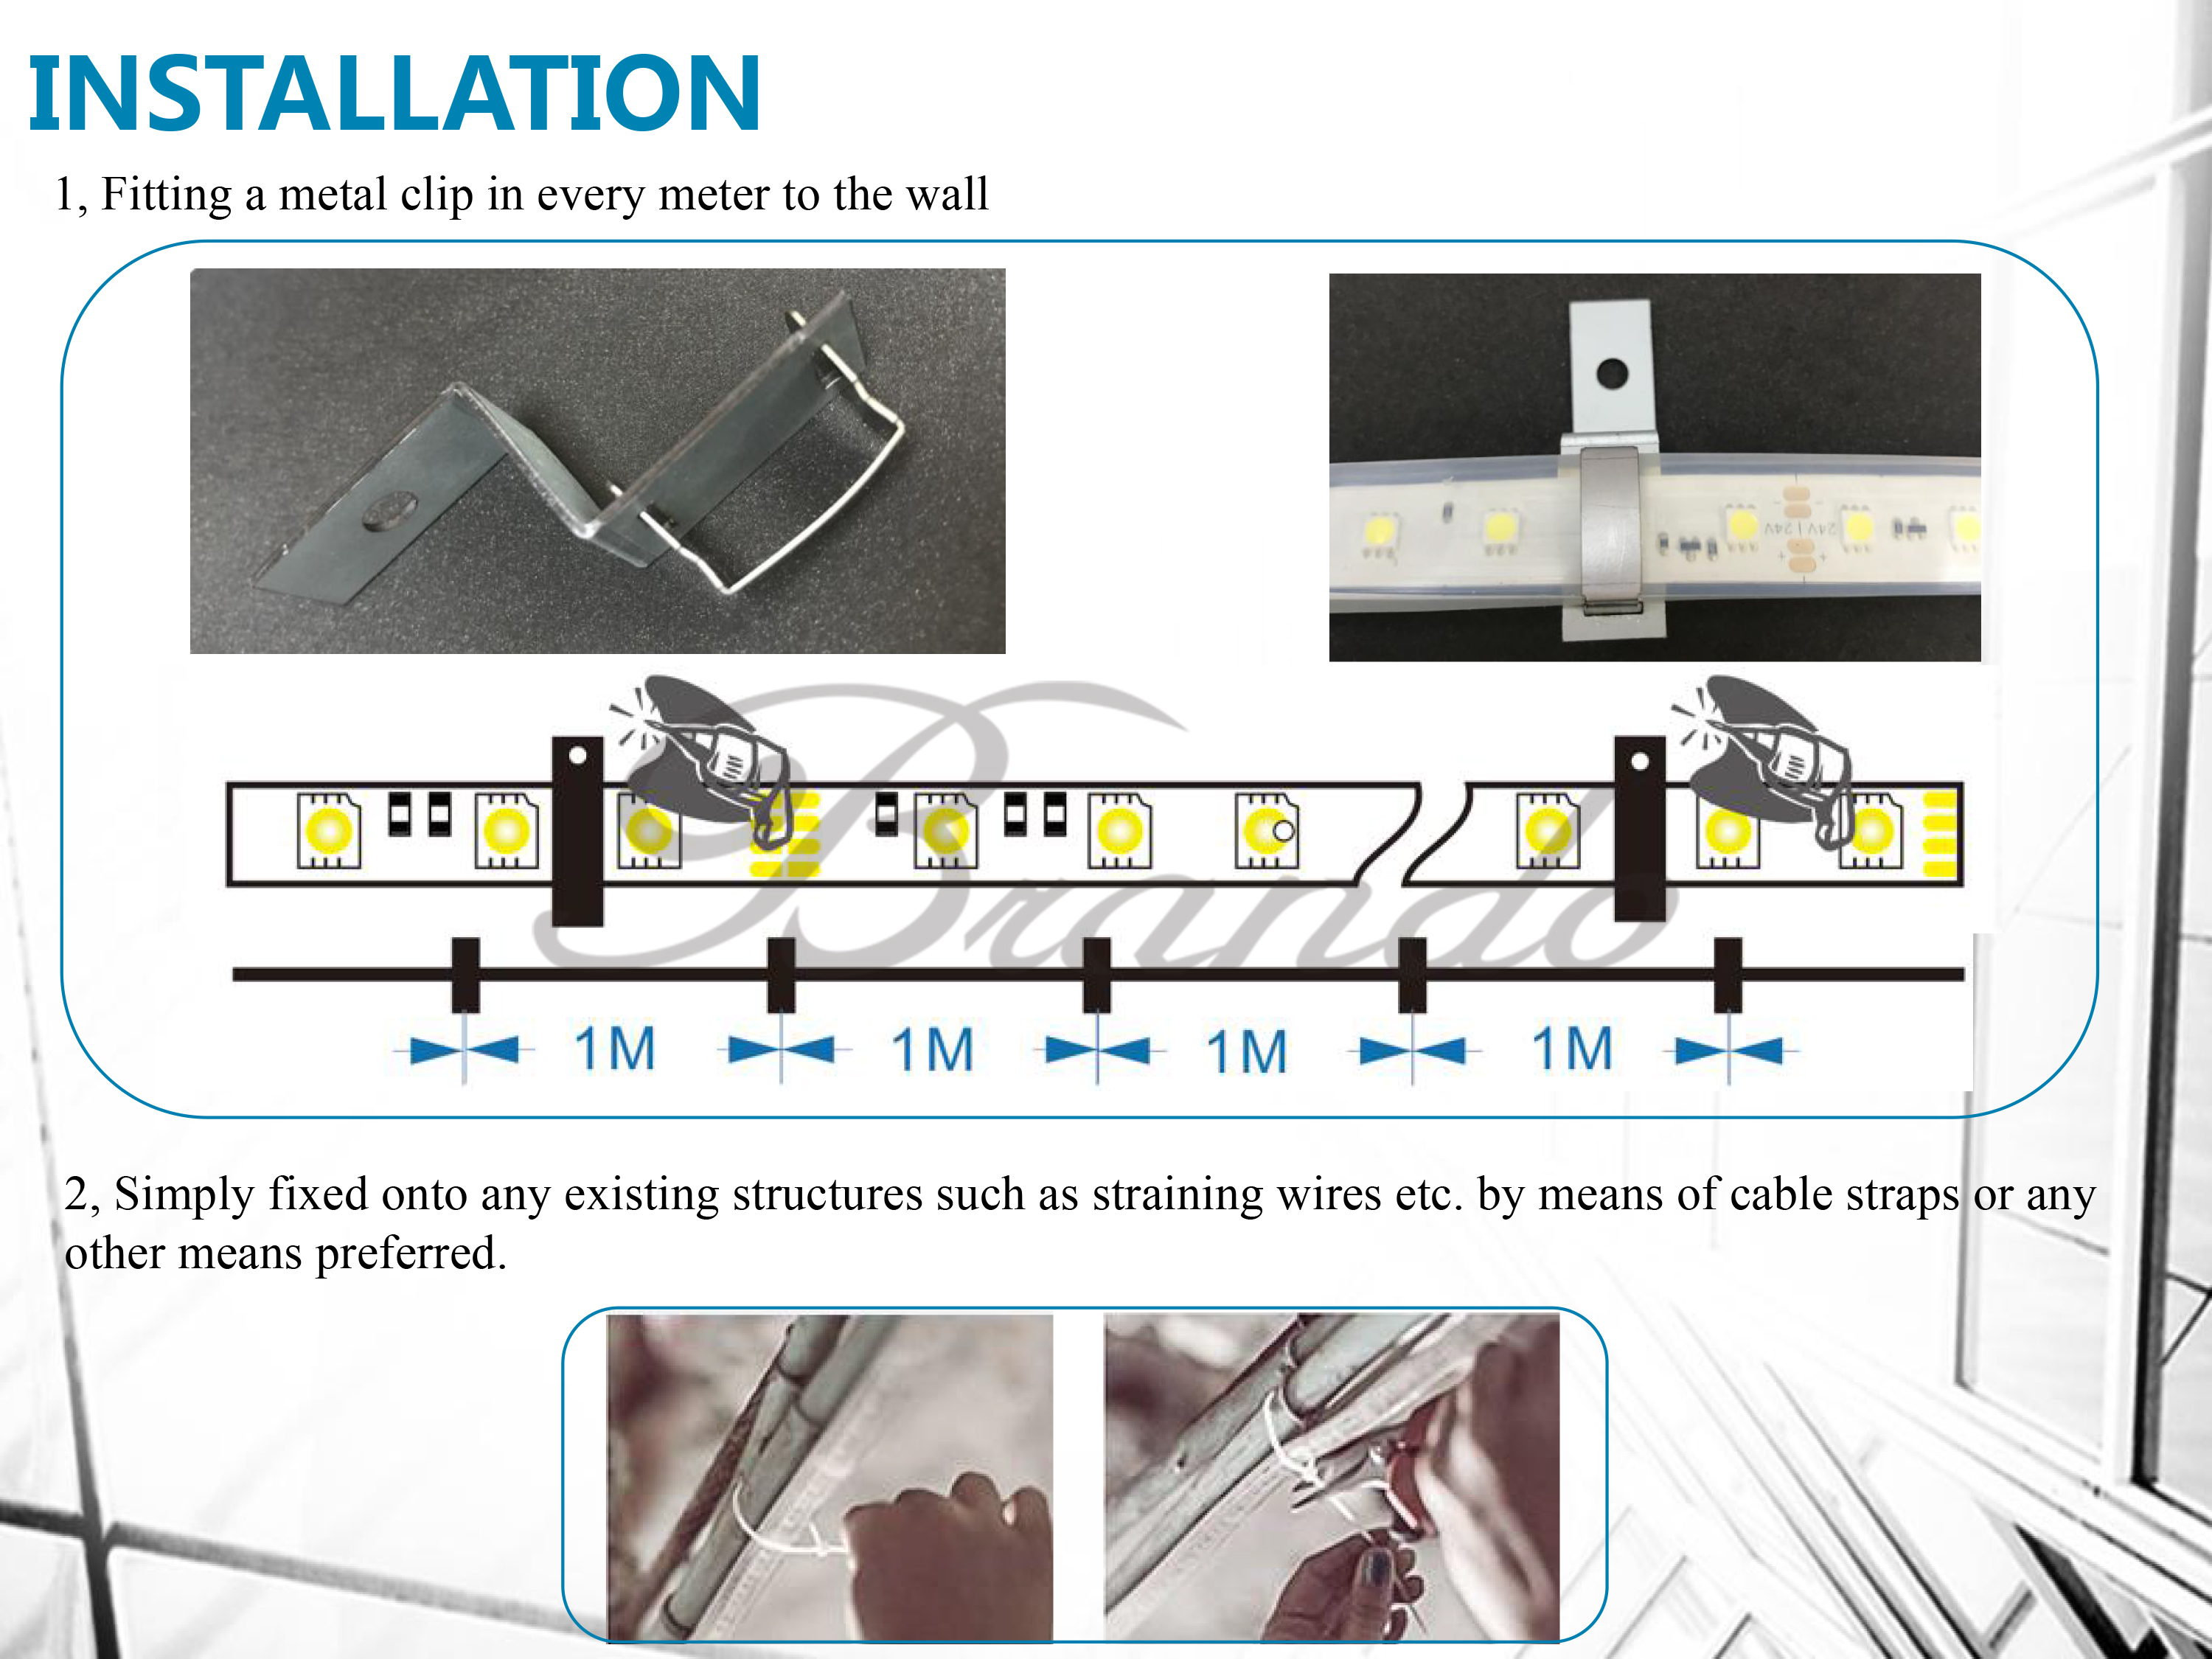 BO-SL60-24V(A) Explosion-proof Flexible LED Strip Lights with IP68 5M